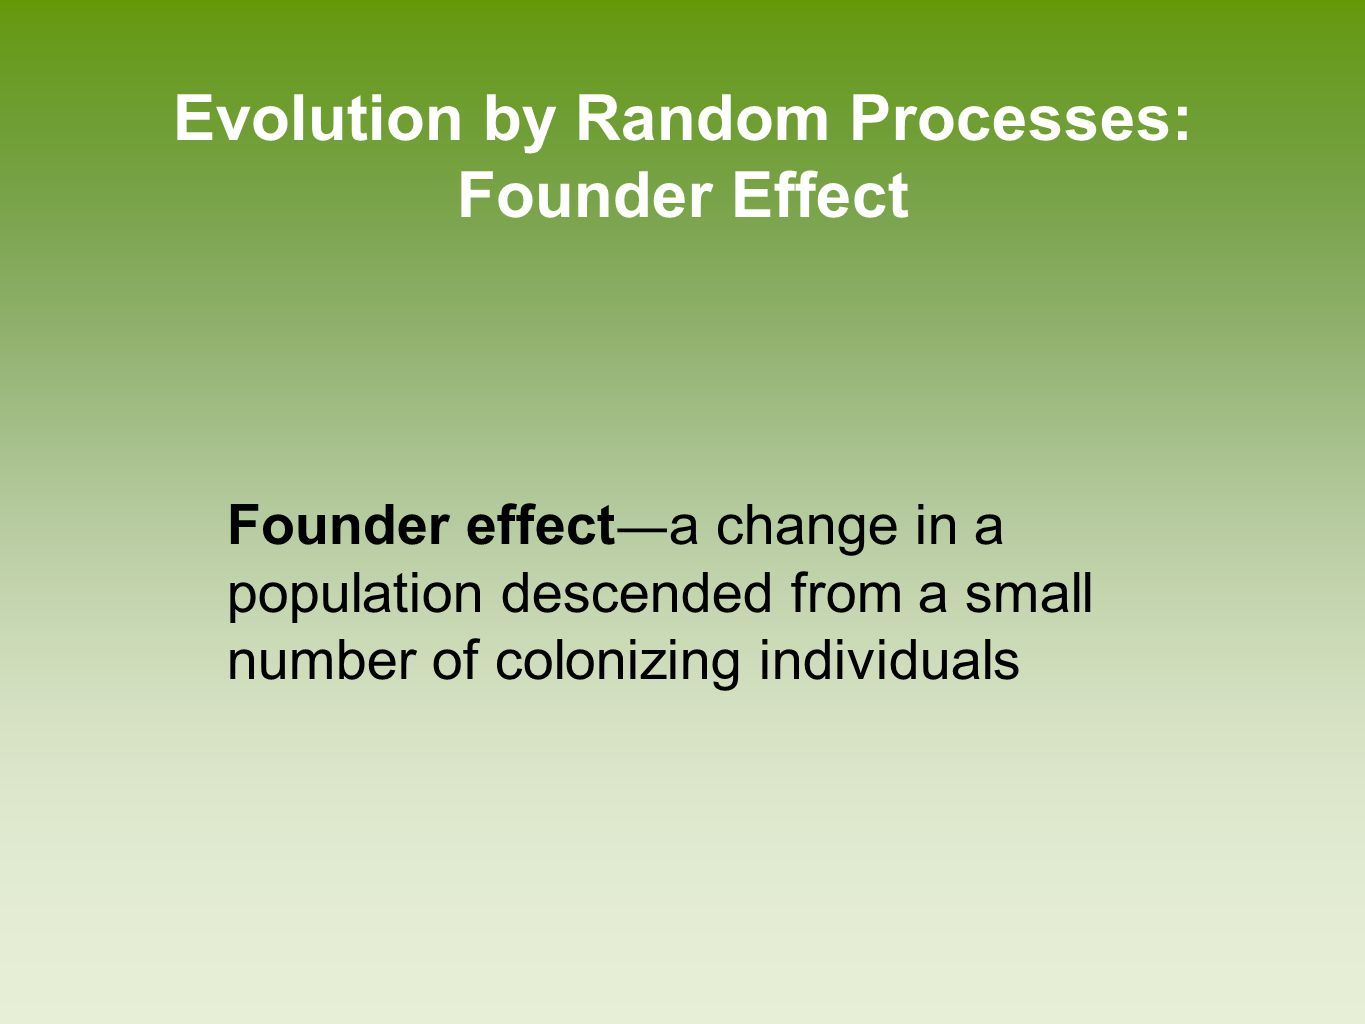 Evolution by Random Processes: Founder Effect